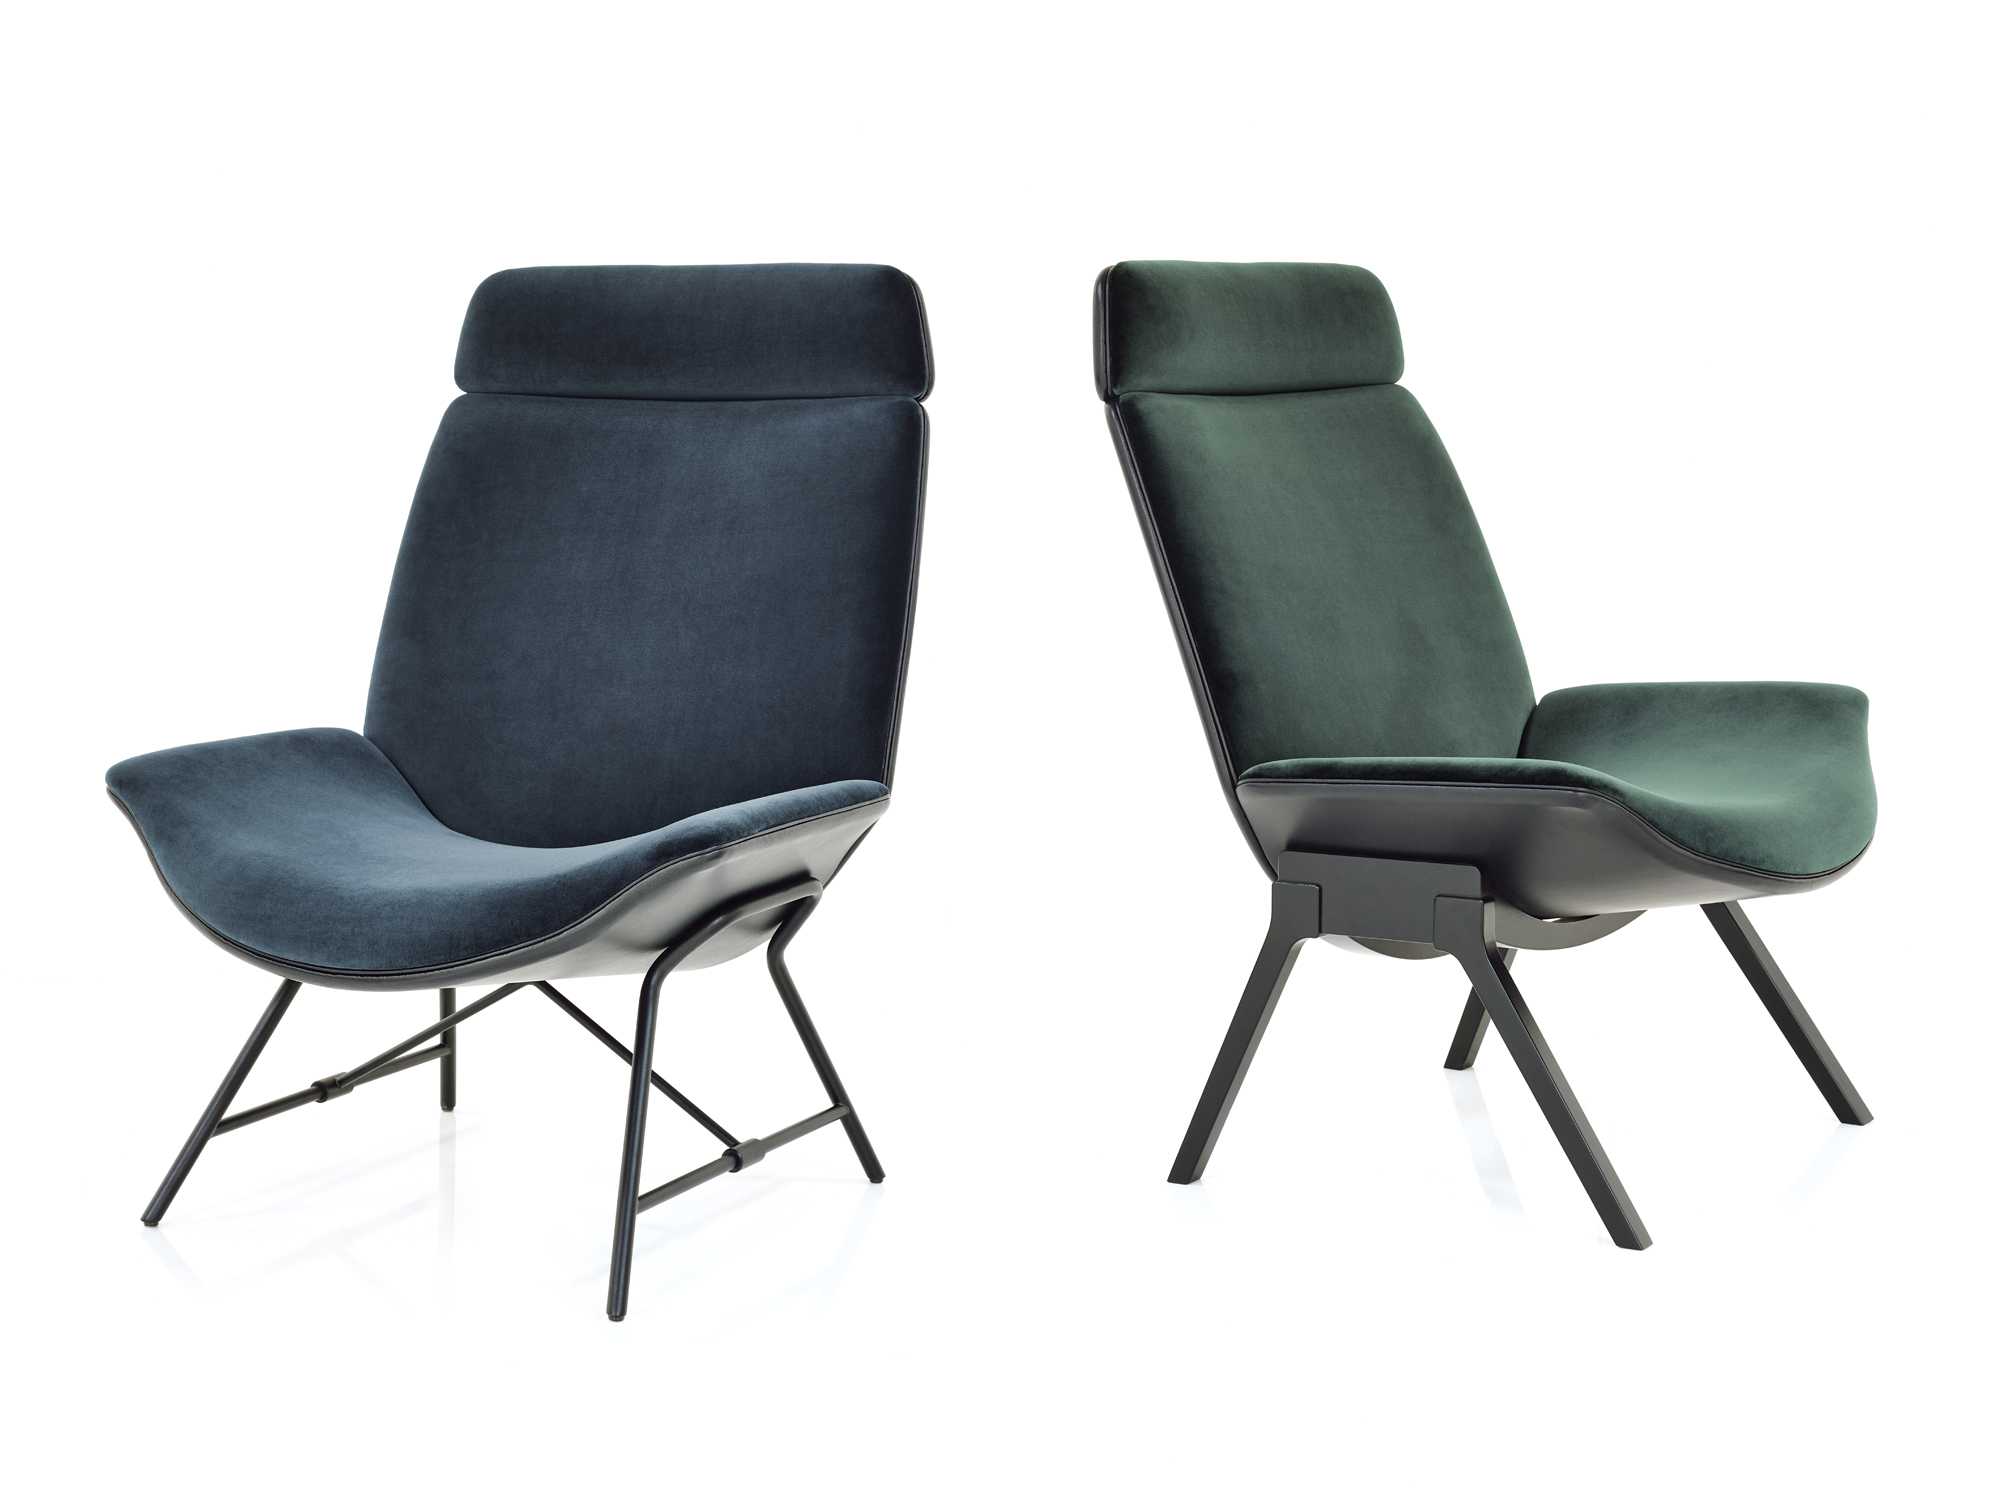 Melange Loungechair For Wittmann - New project launched at IMM Cologne 2018